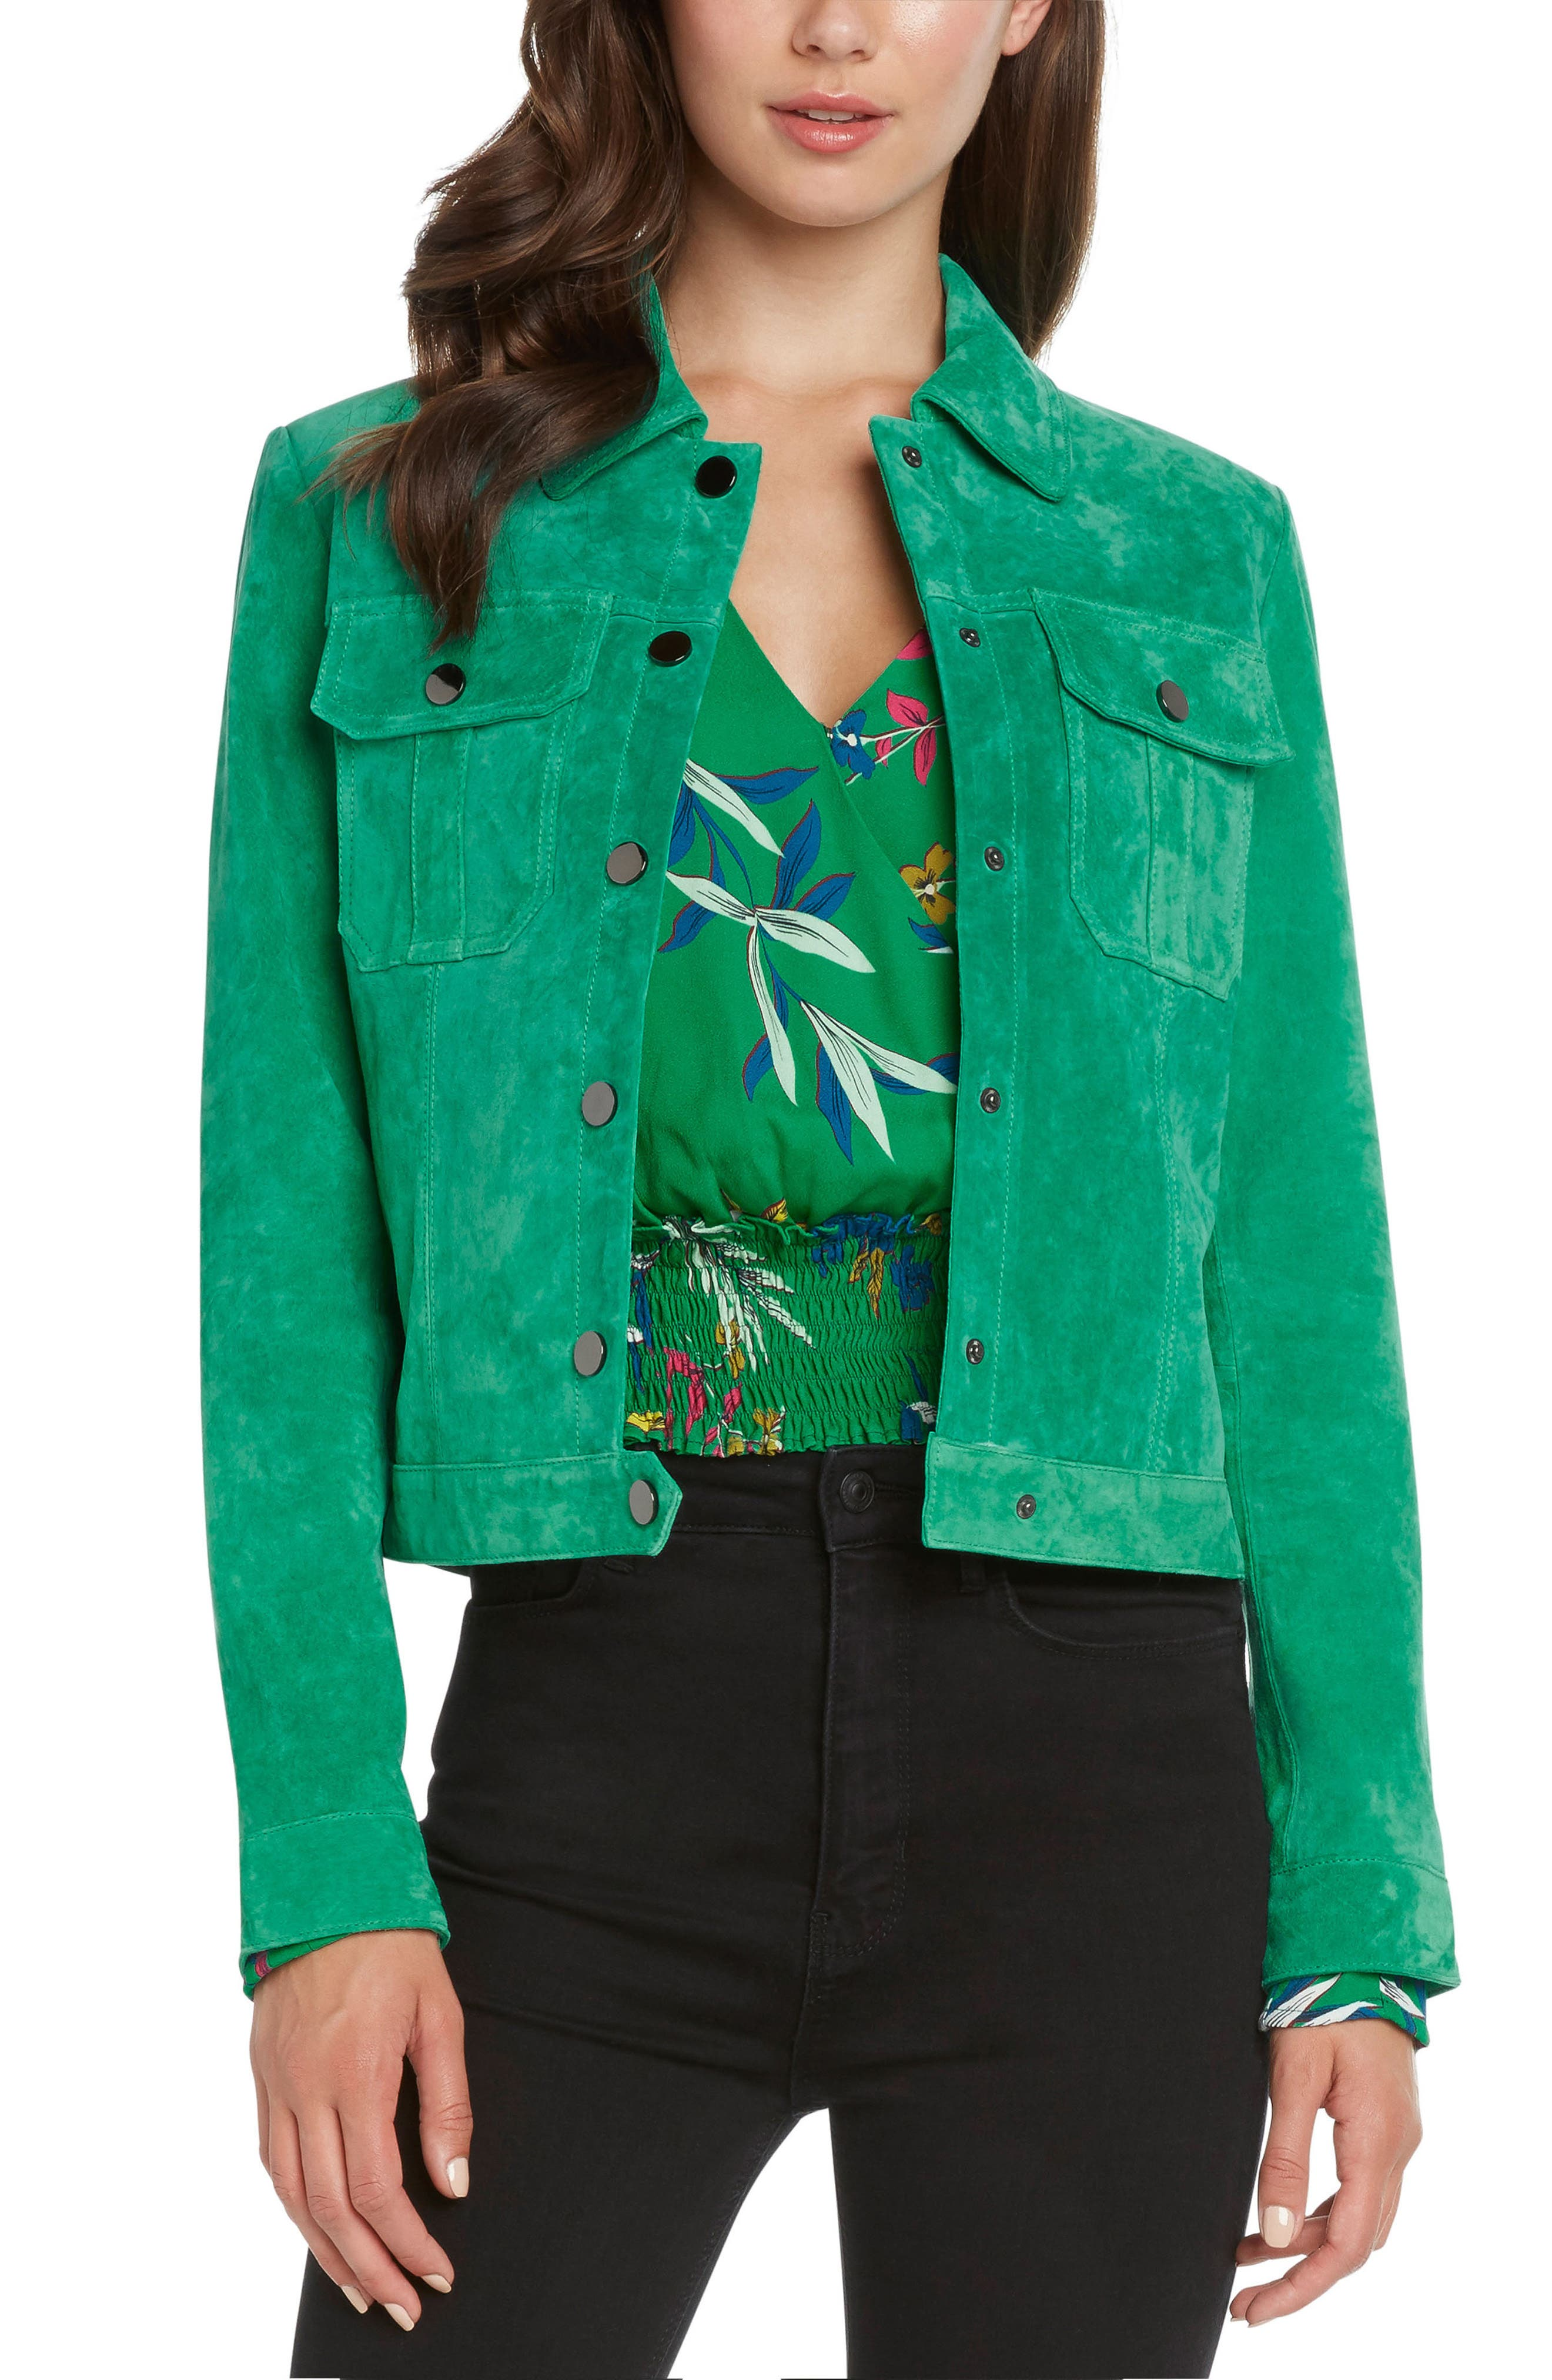 WILLOW & CLAY Suede Crop Jacket in Kelly Green